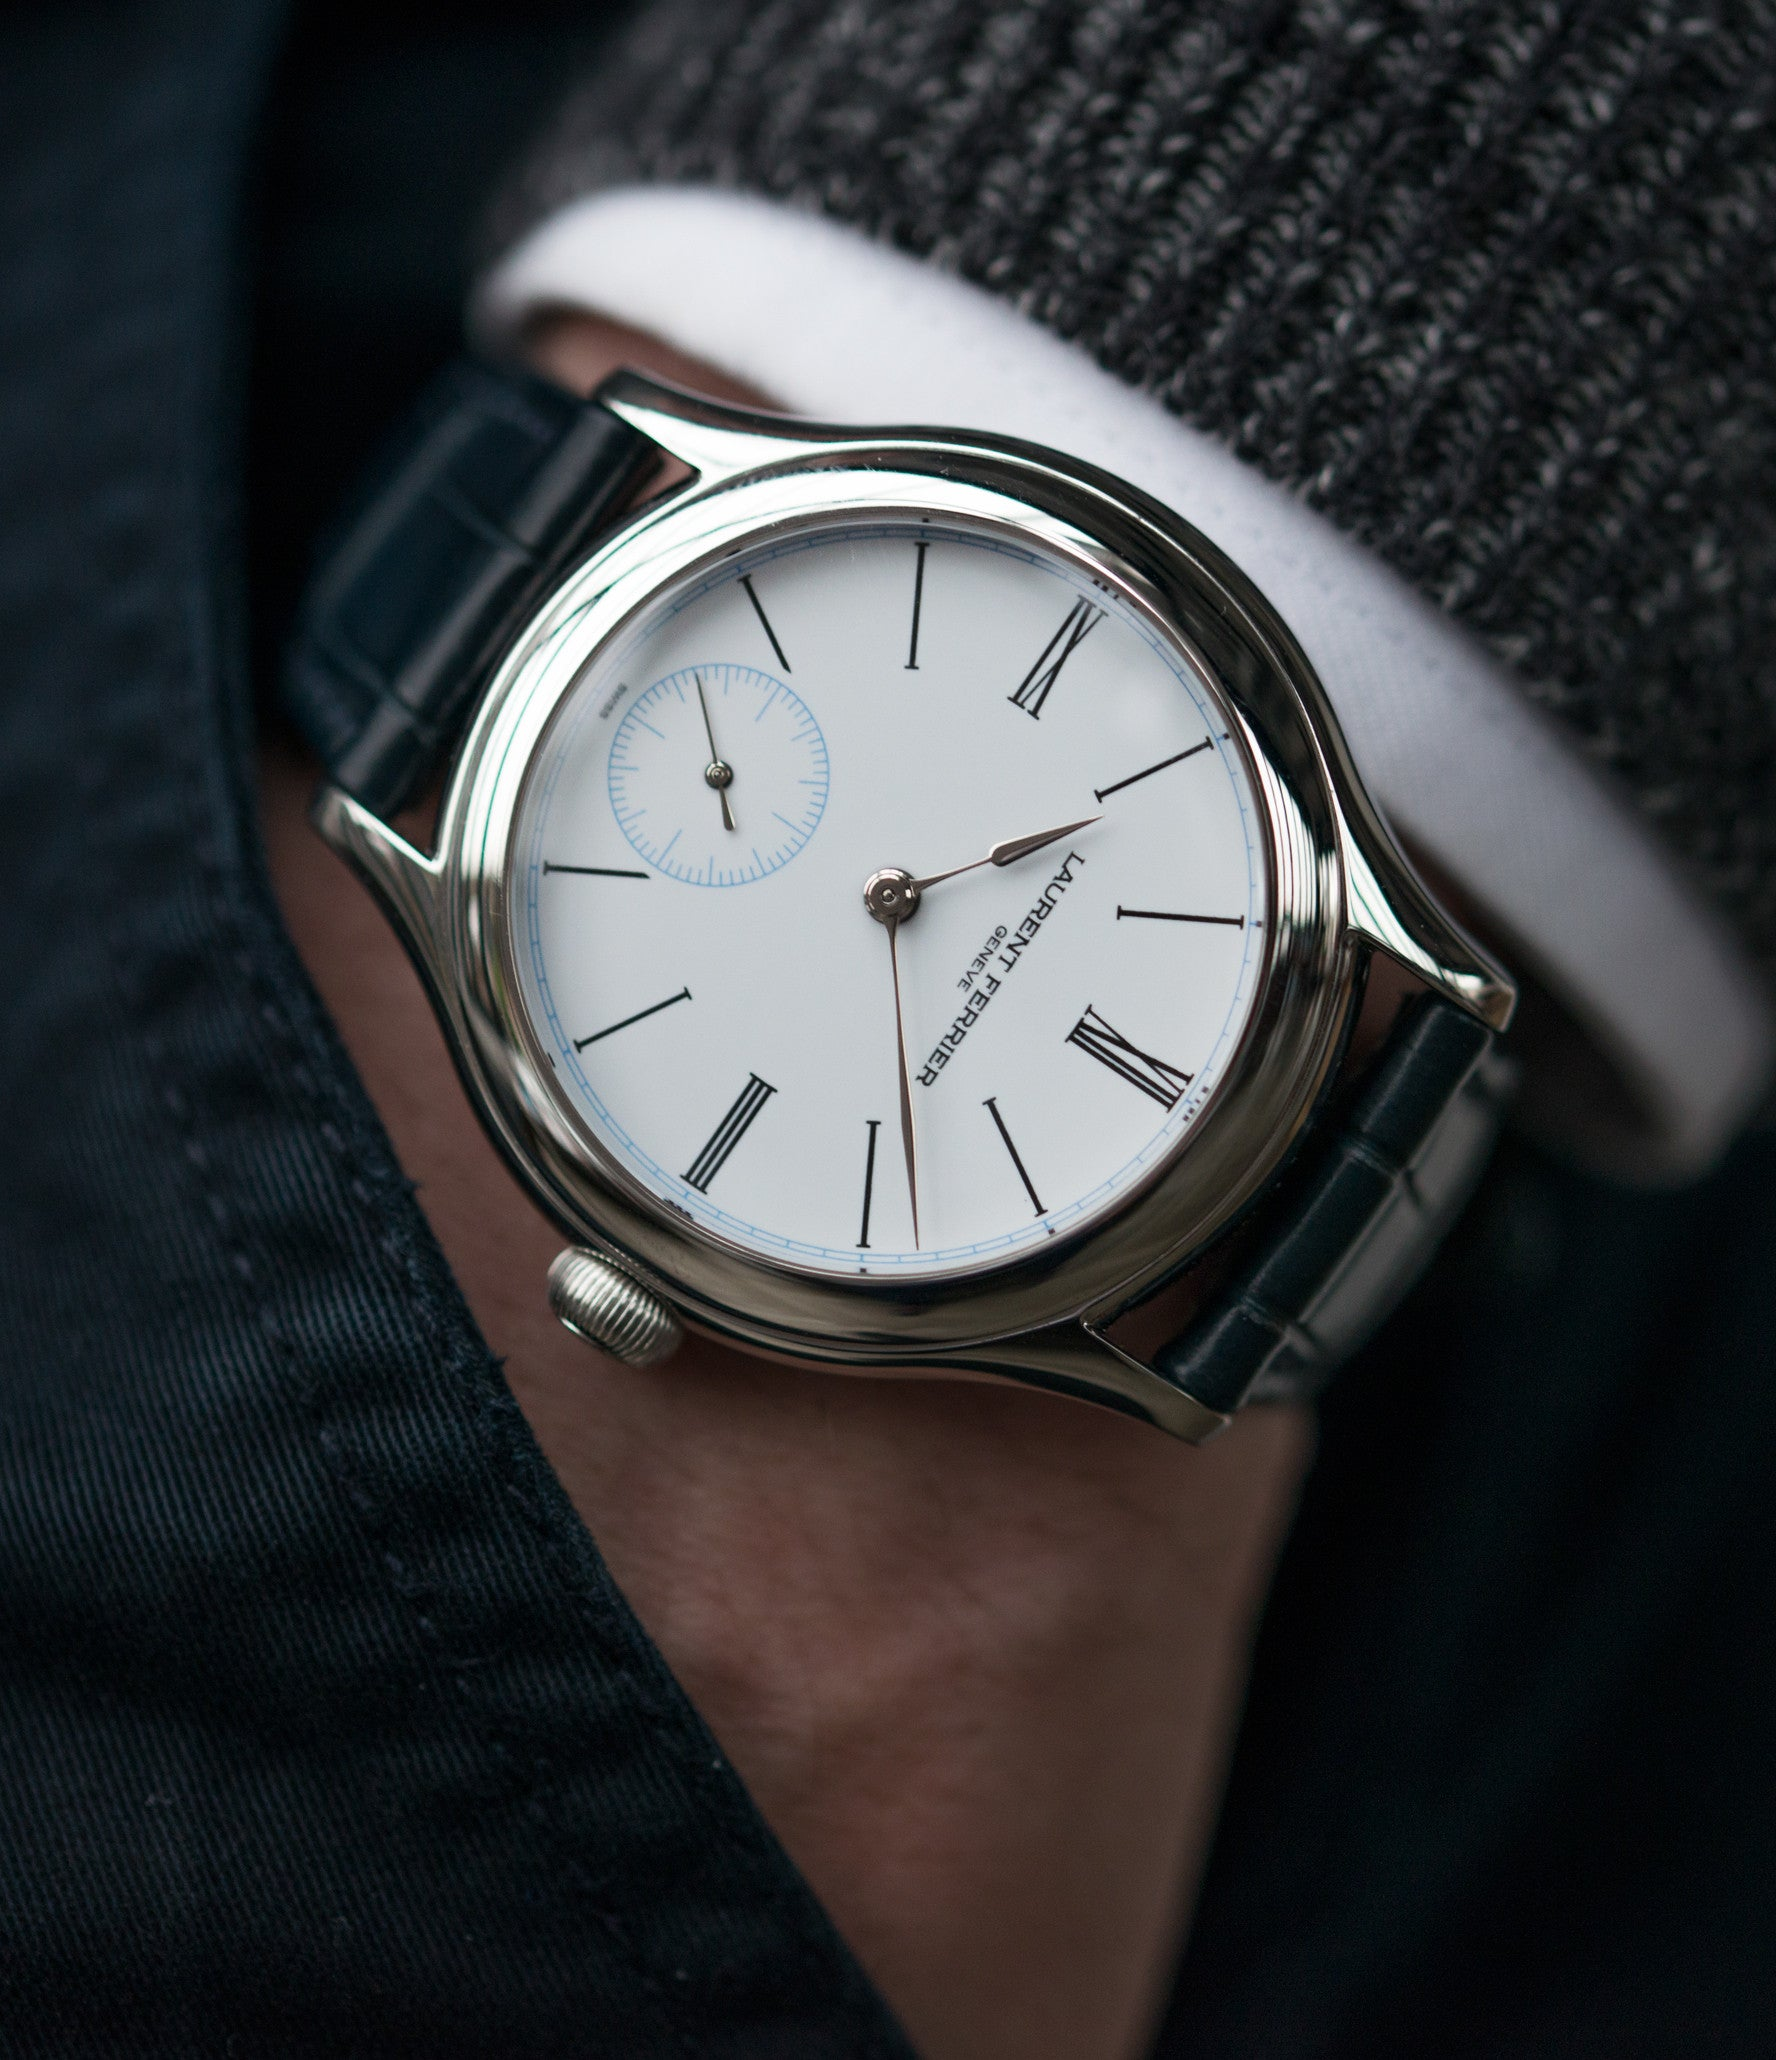 buy platinum wristwatch Laurent Ferrier Galet Micro-rotor LCF006 enamel dial limited edition watch for sale online at A Collected Man London specialist independent watchmakers